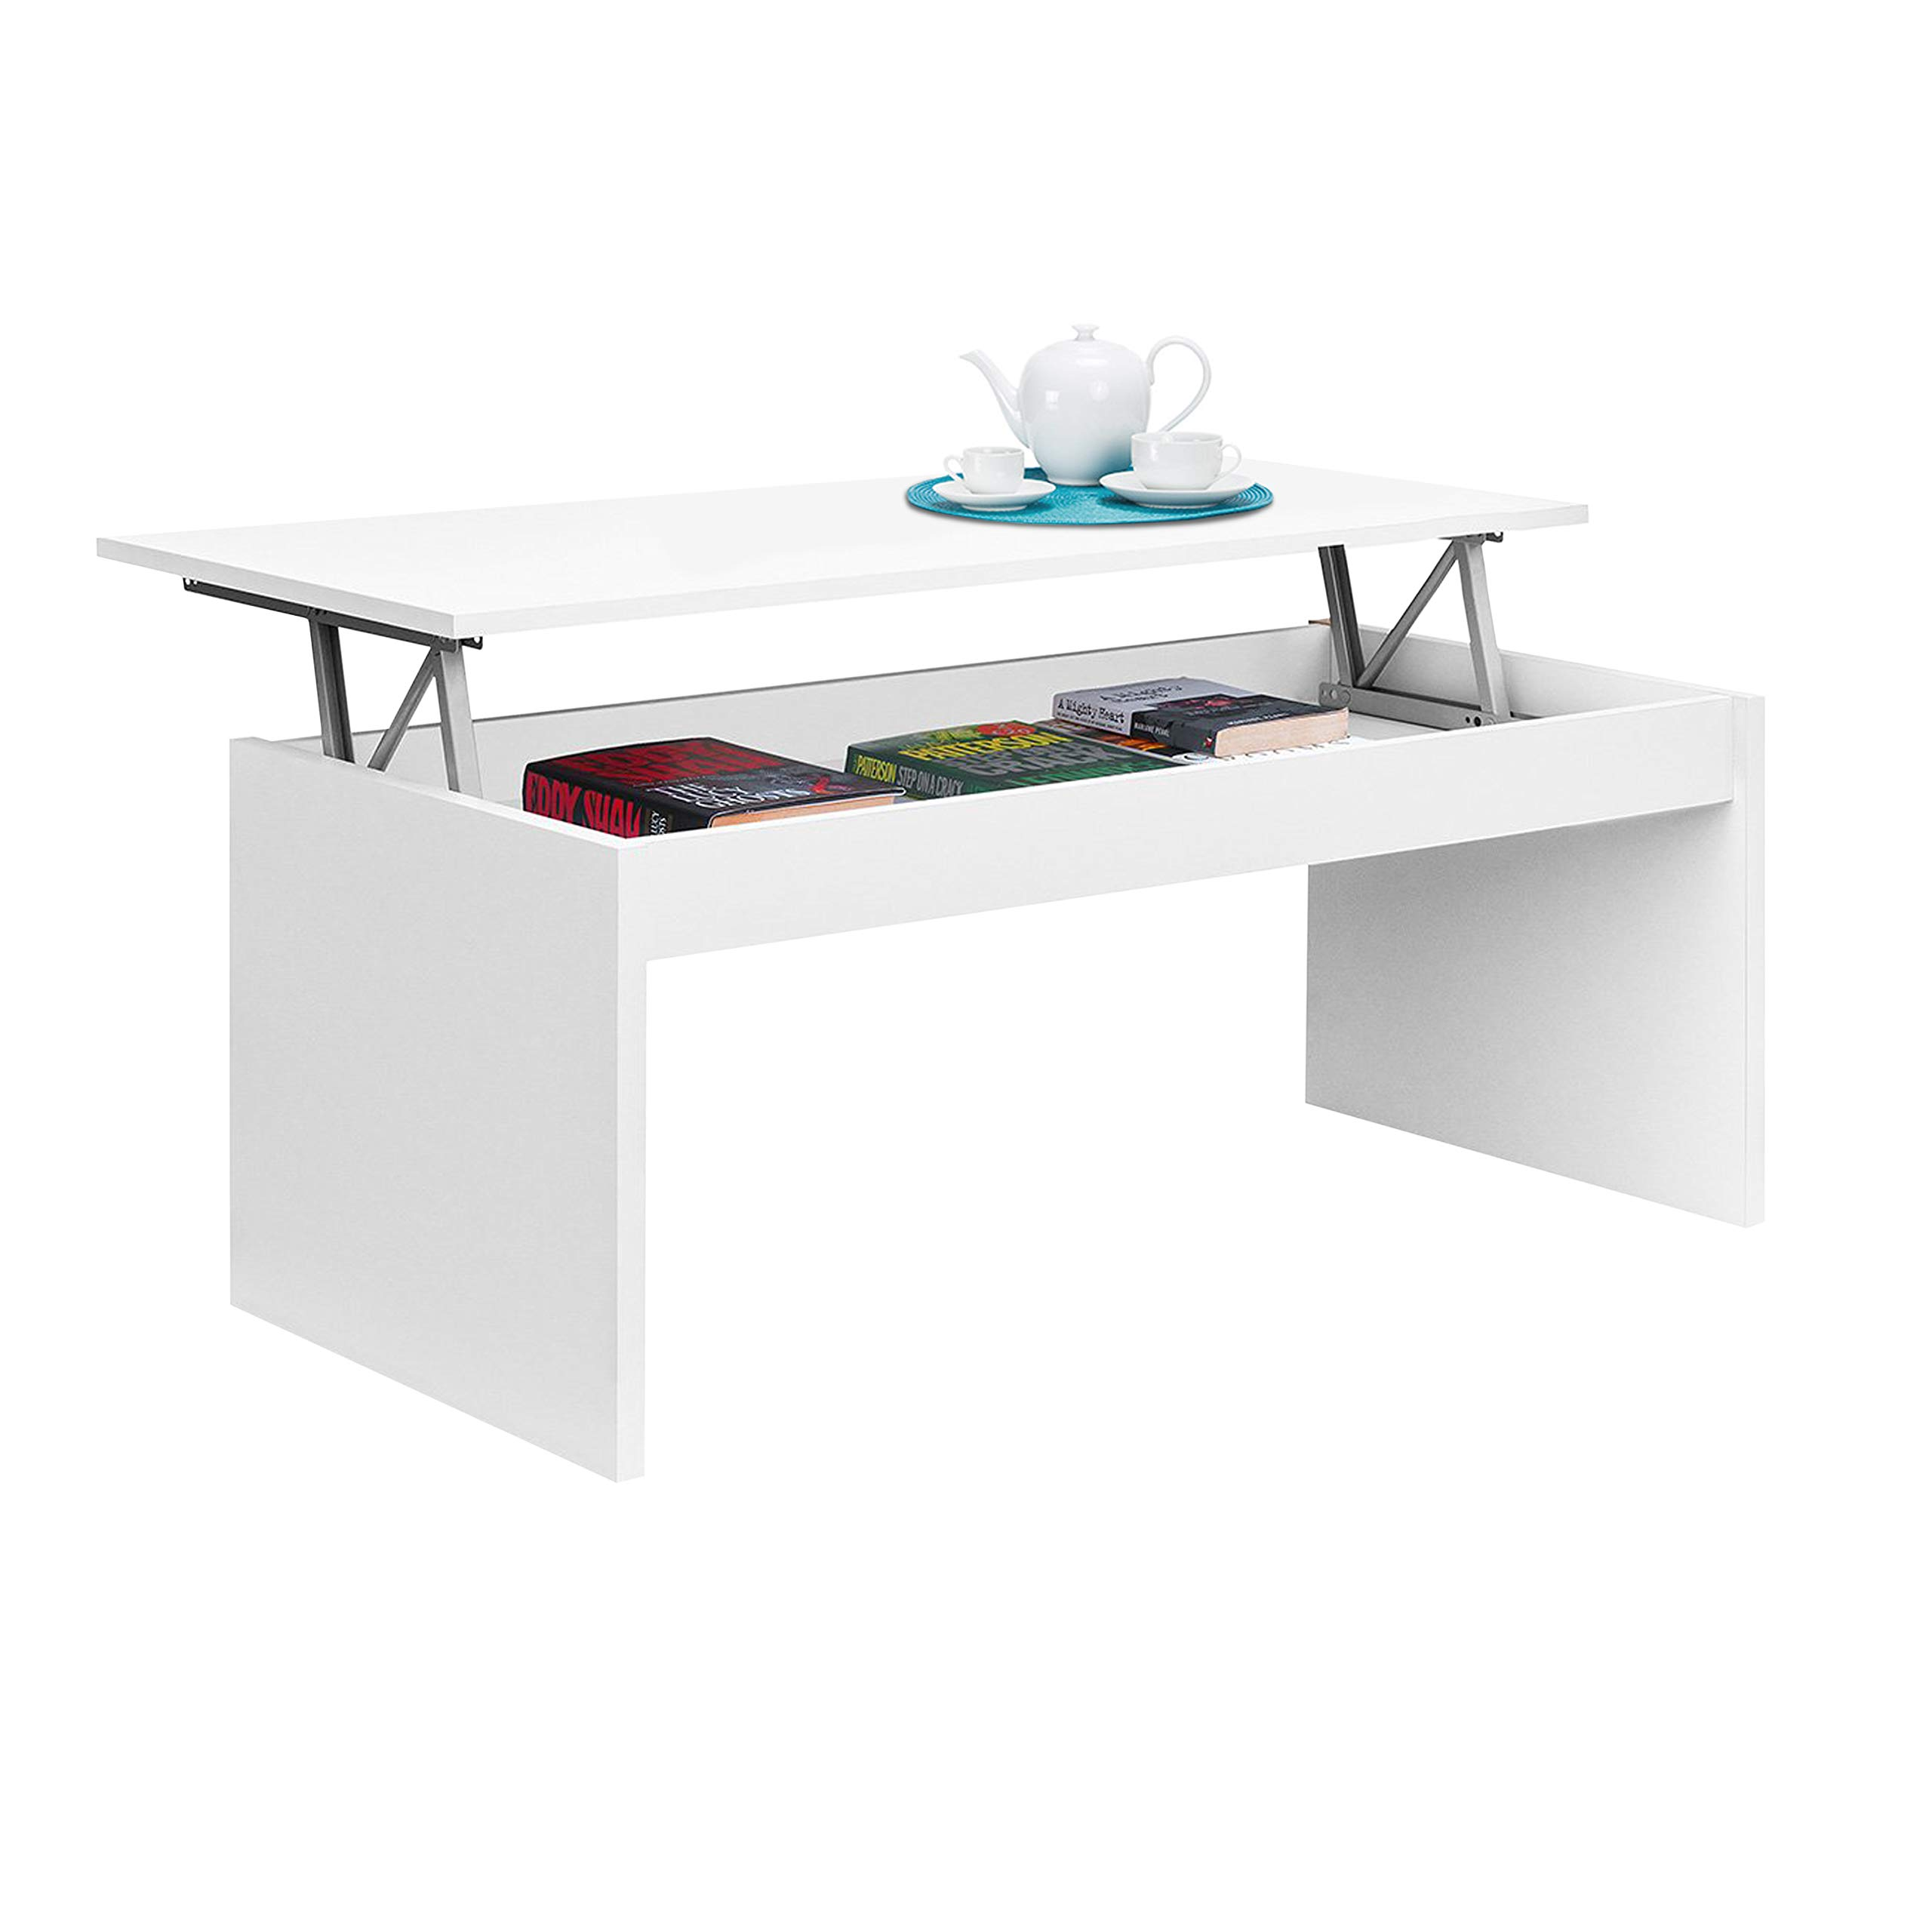 Due-Home White Gloss Coffee Table with Folding Seat